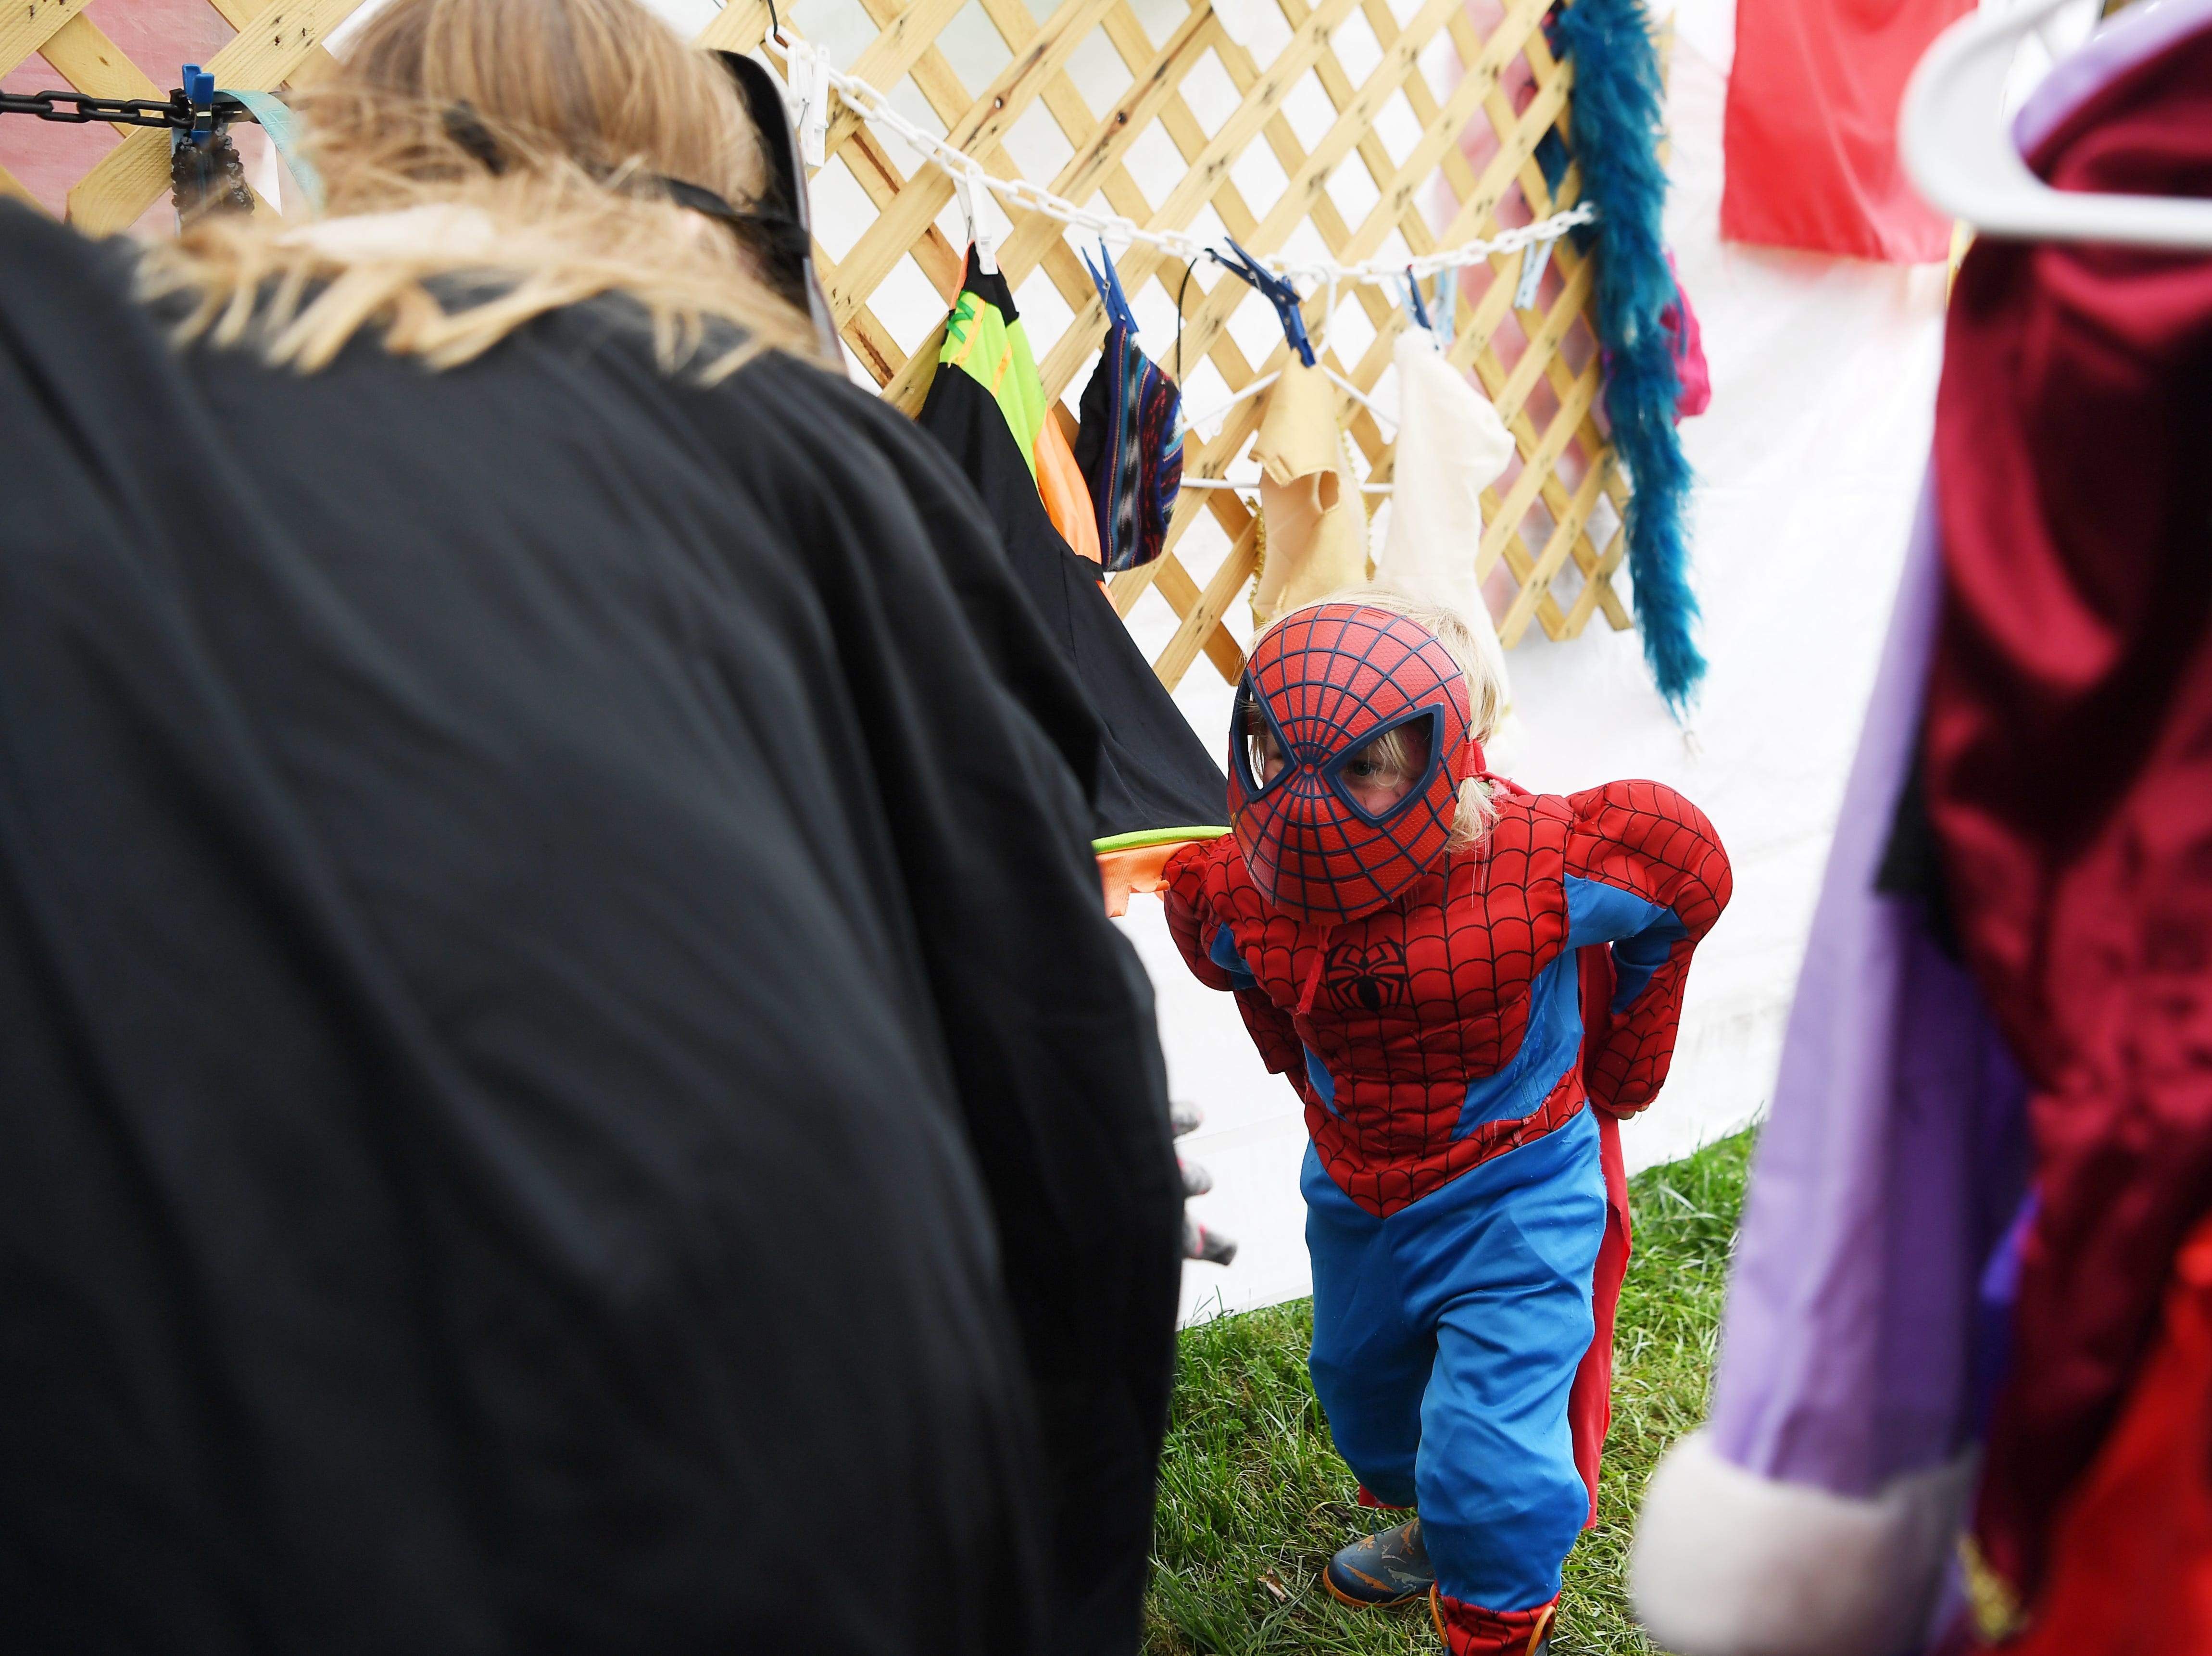 Jade McDowell, 4, acts like Spiderman as he plays with LEAF volunteer Haddie Herr in the costume tent at the 47th Lake Eden Arts Festival in Black Mountain Oct. 20, 2018.